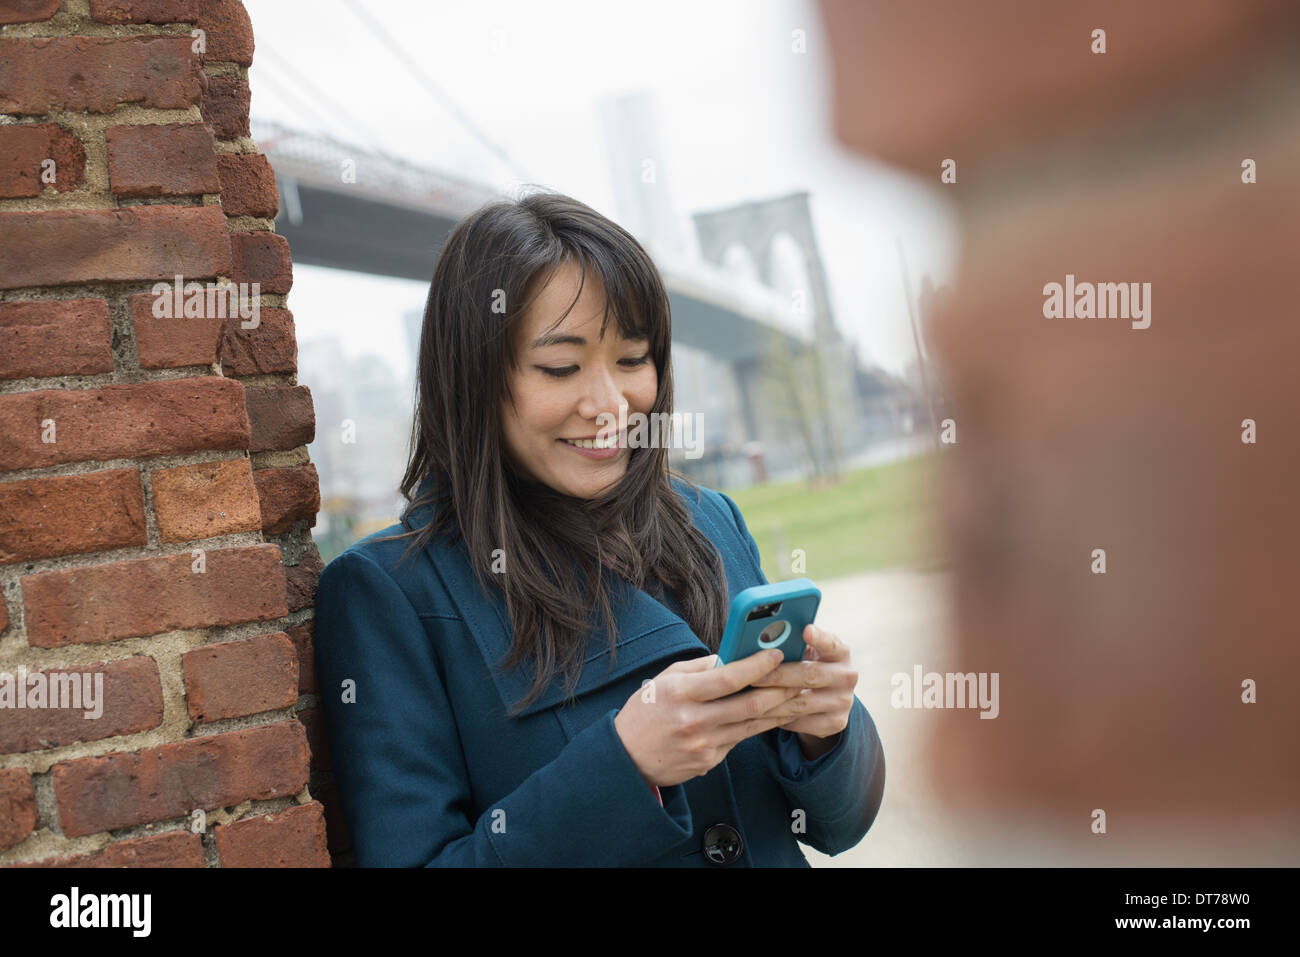 New York city. The Brooklyn Bridge crossing over the East River. A woman leaning against a brick wall, checking her phone. - Stock Image